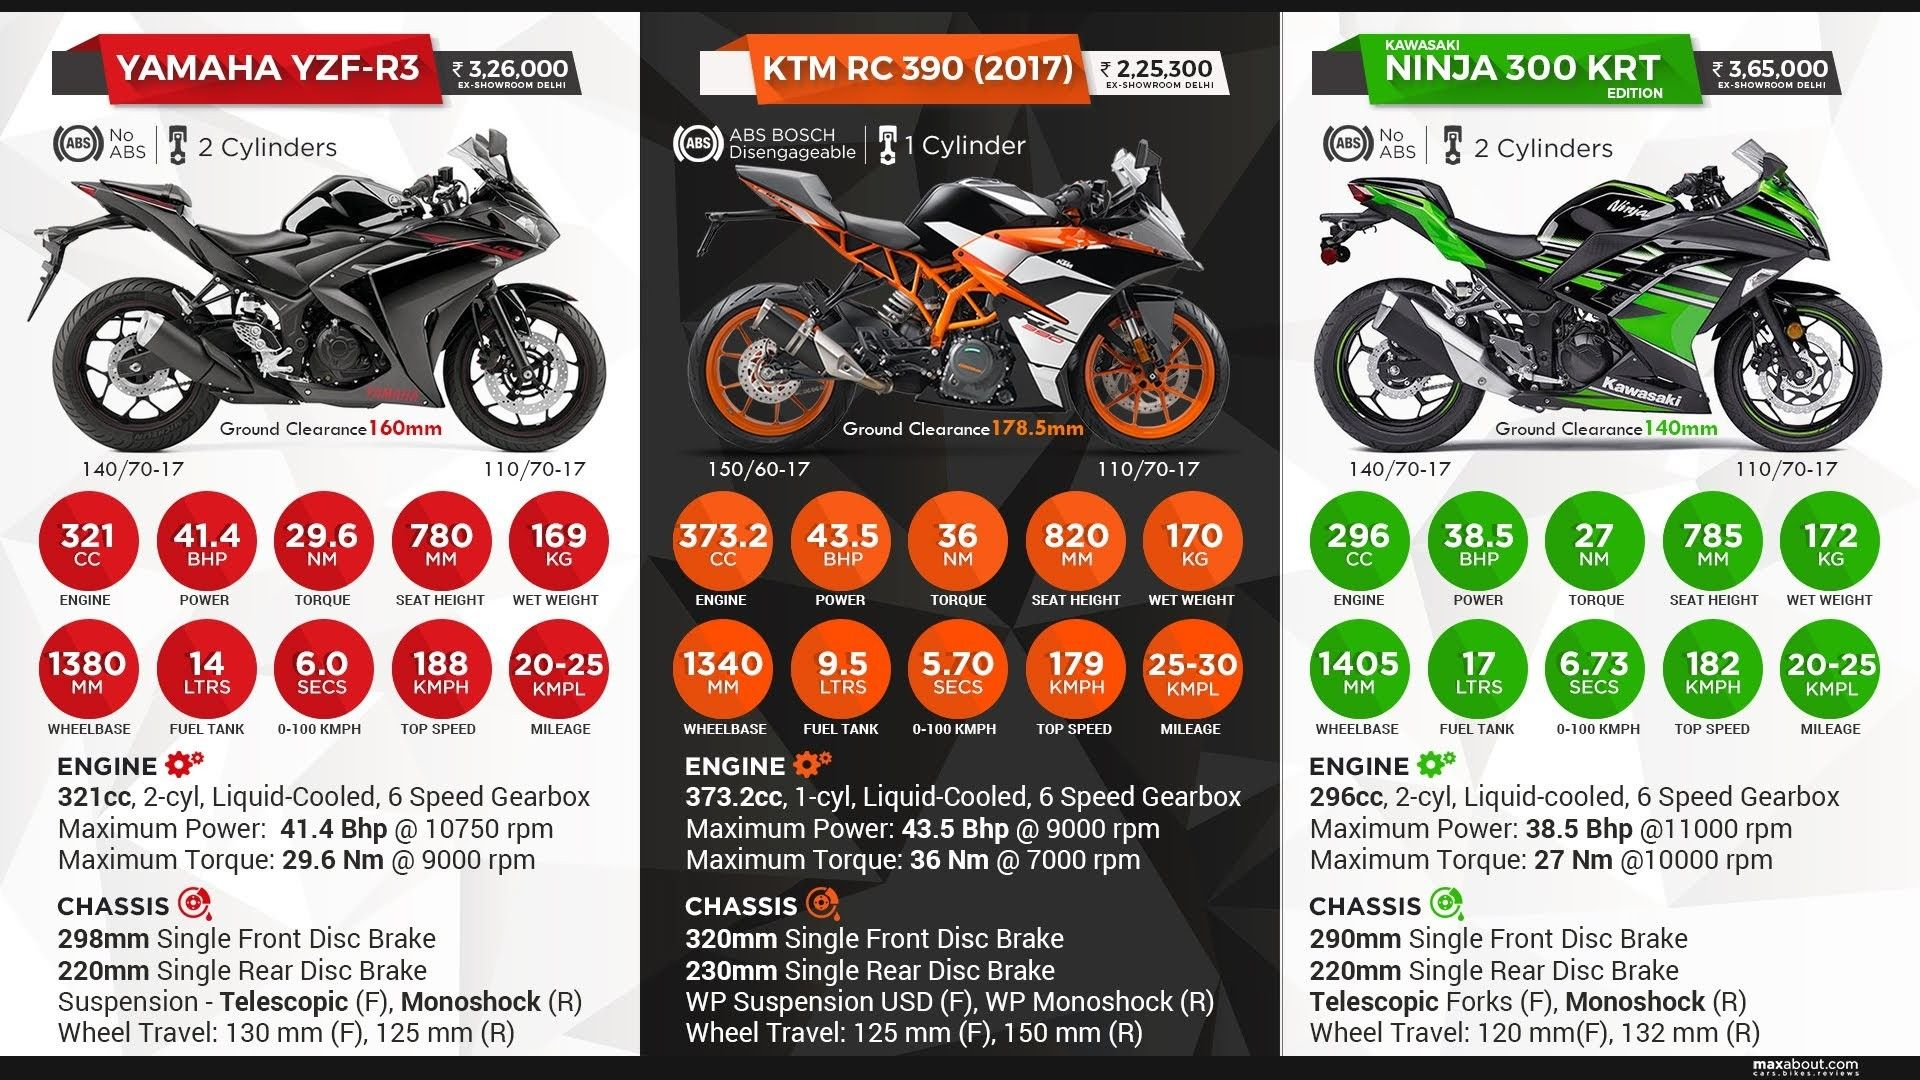 Pin By Prikshitsaini On Bikes Infographic Ktm Rc Ktm Yamaha Yzf